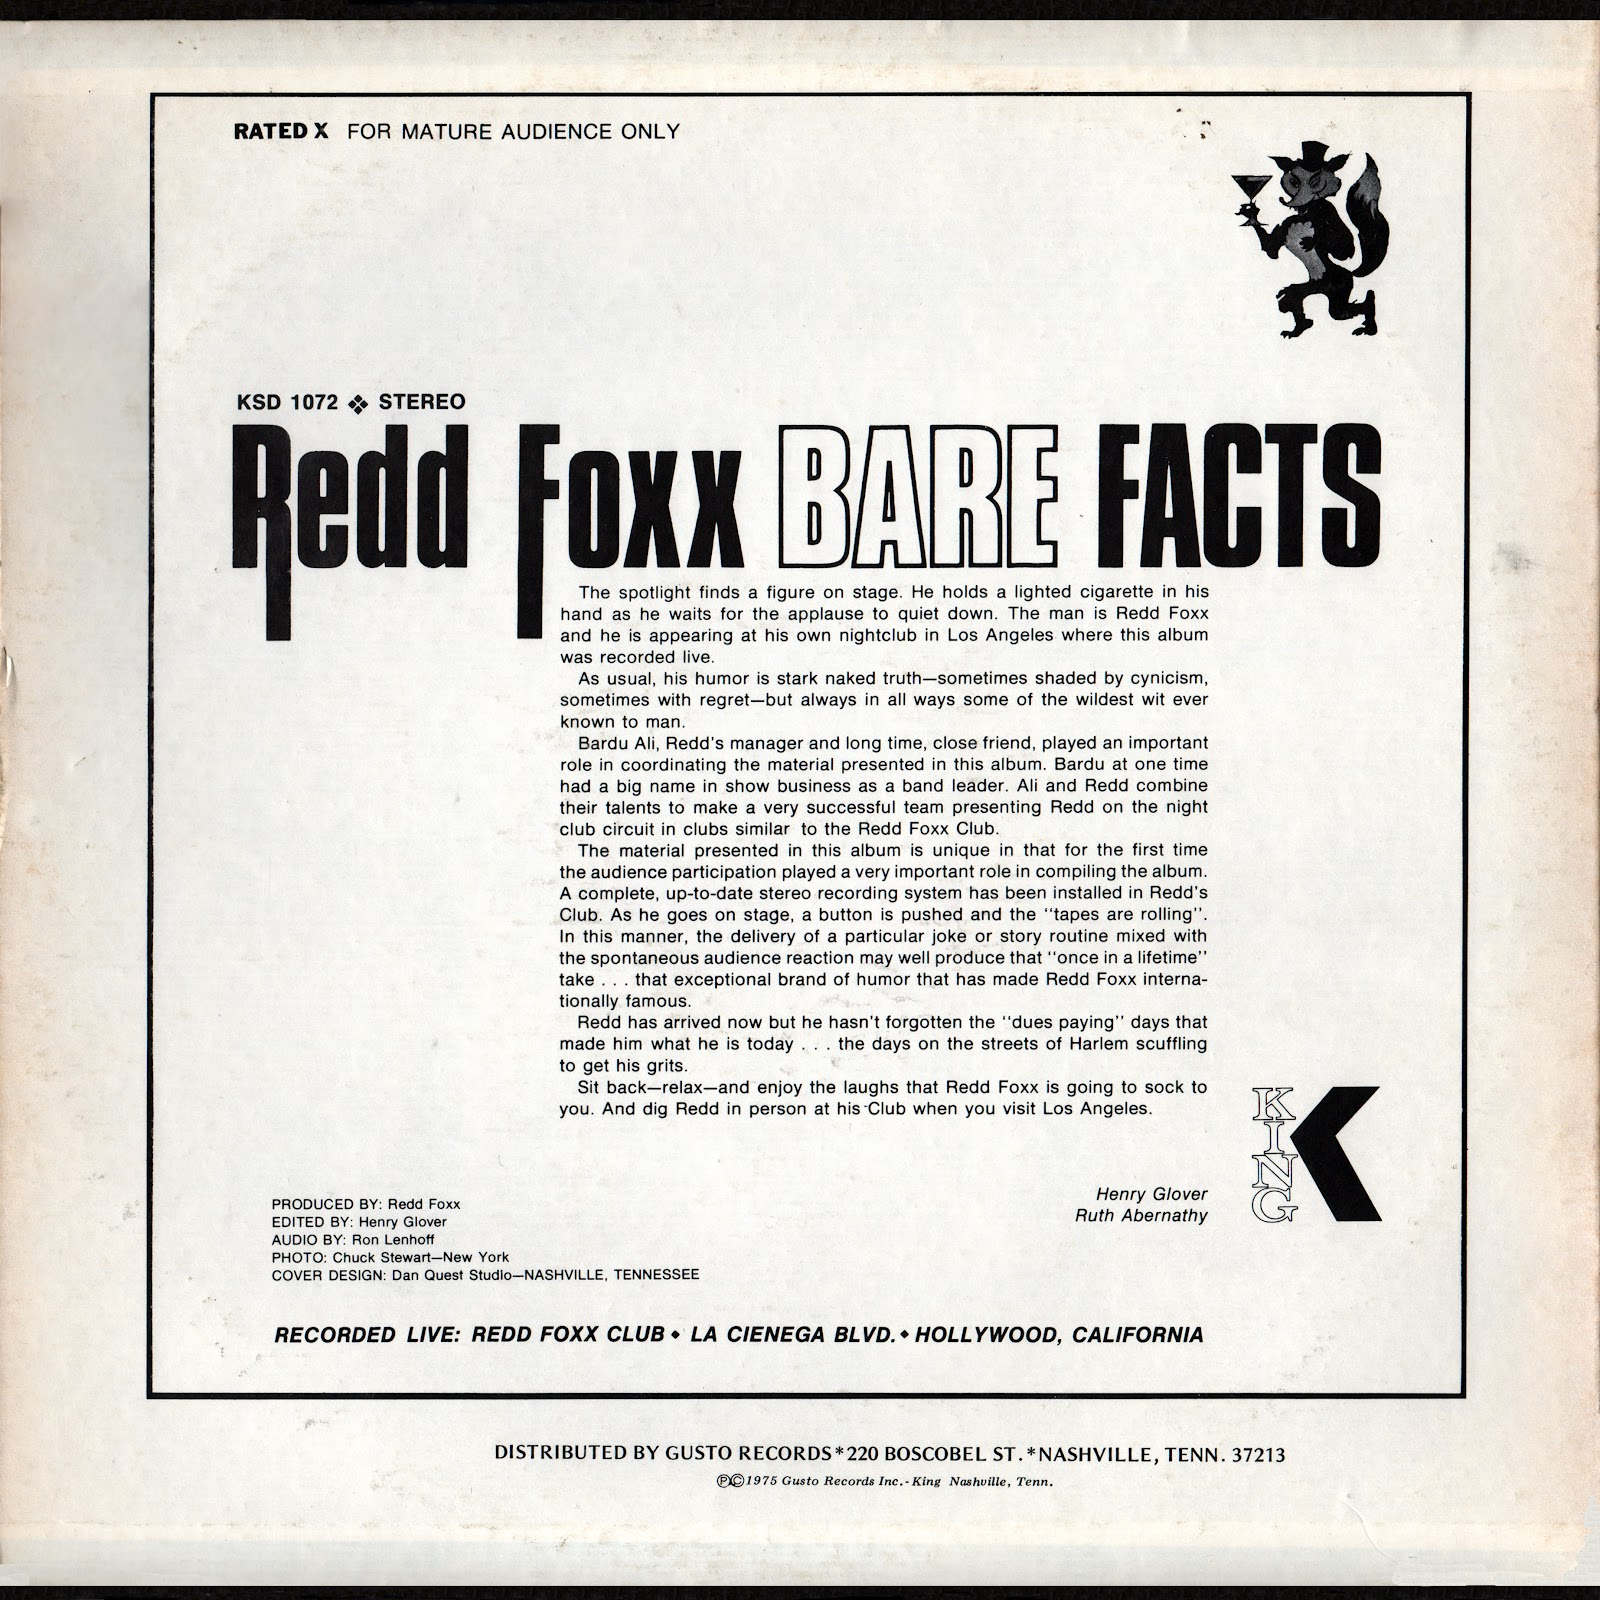 Vintage Stand Up Comedy Redd Foxx Bare Facts 1976